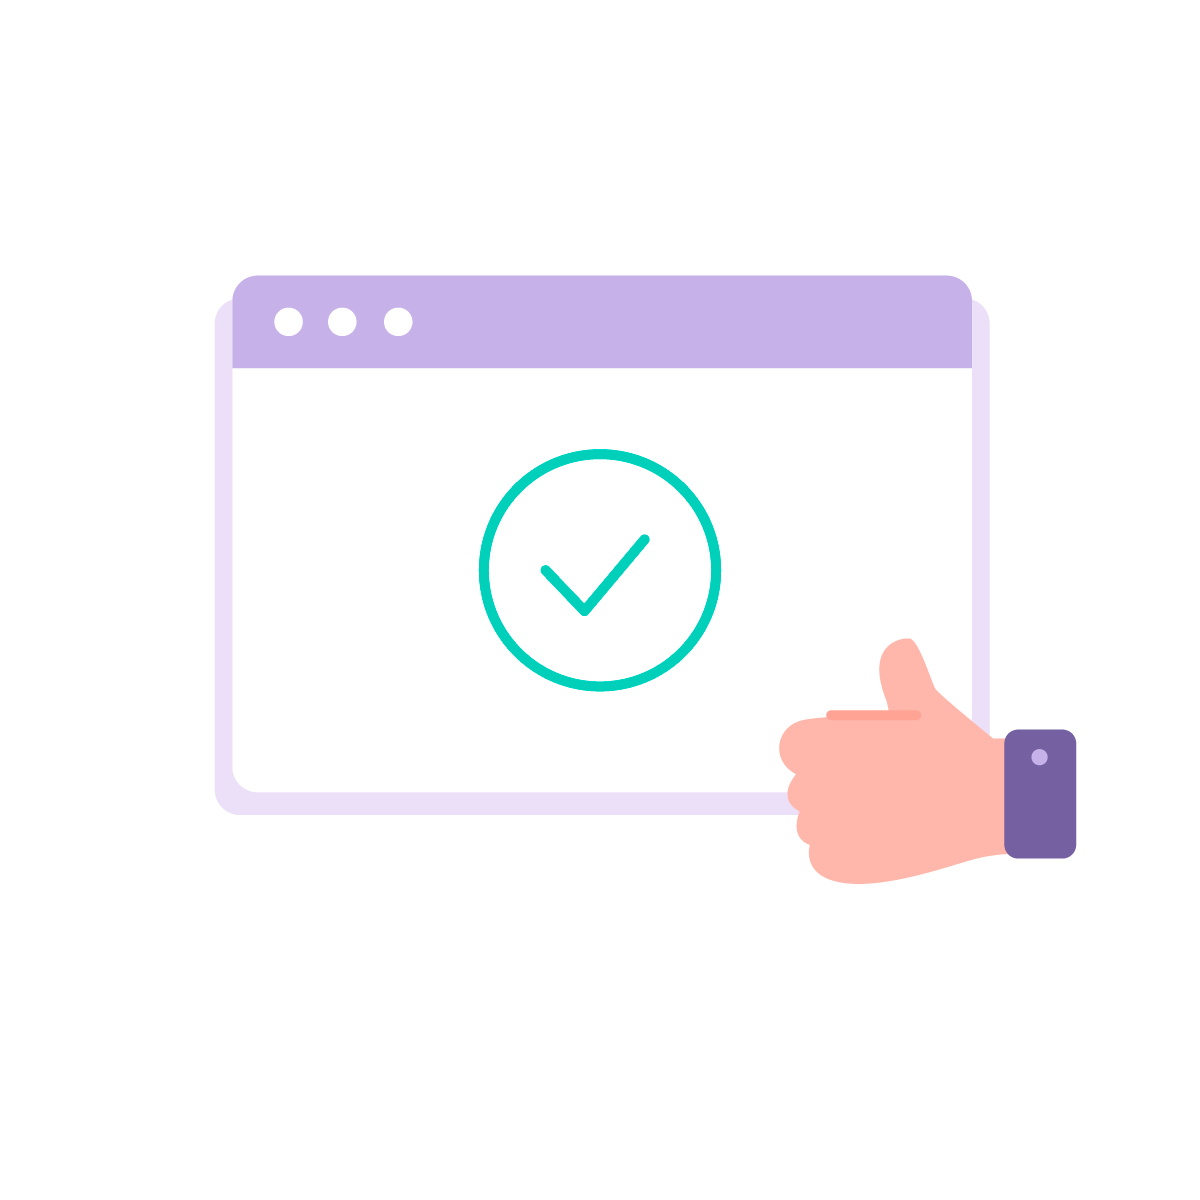 Thumbs up to easy online onboarding